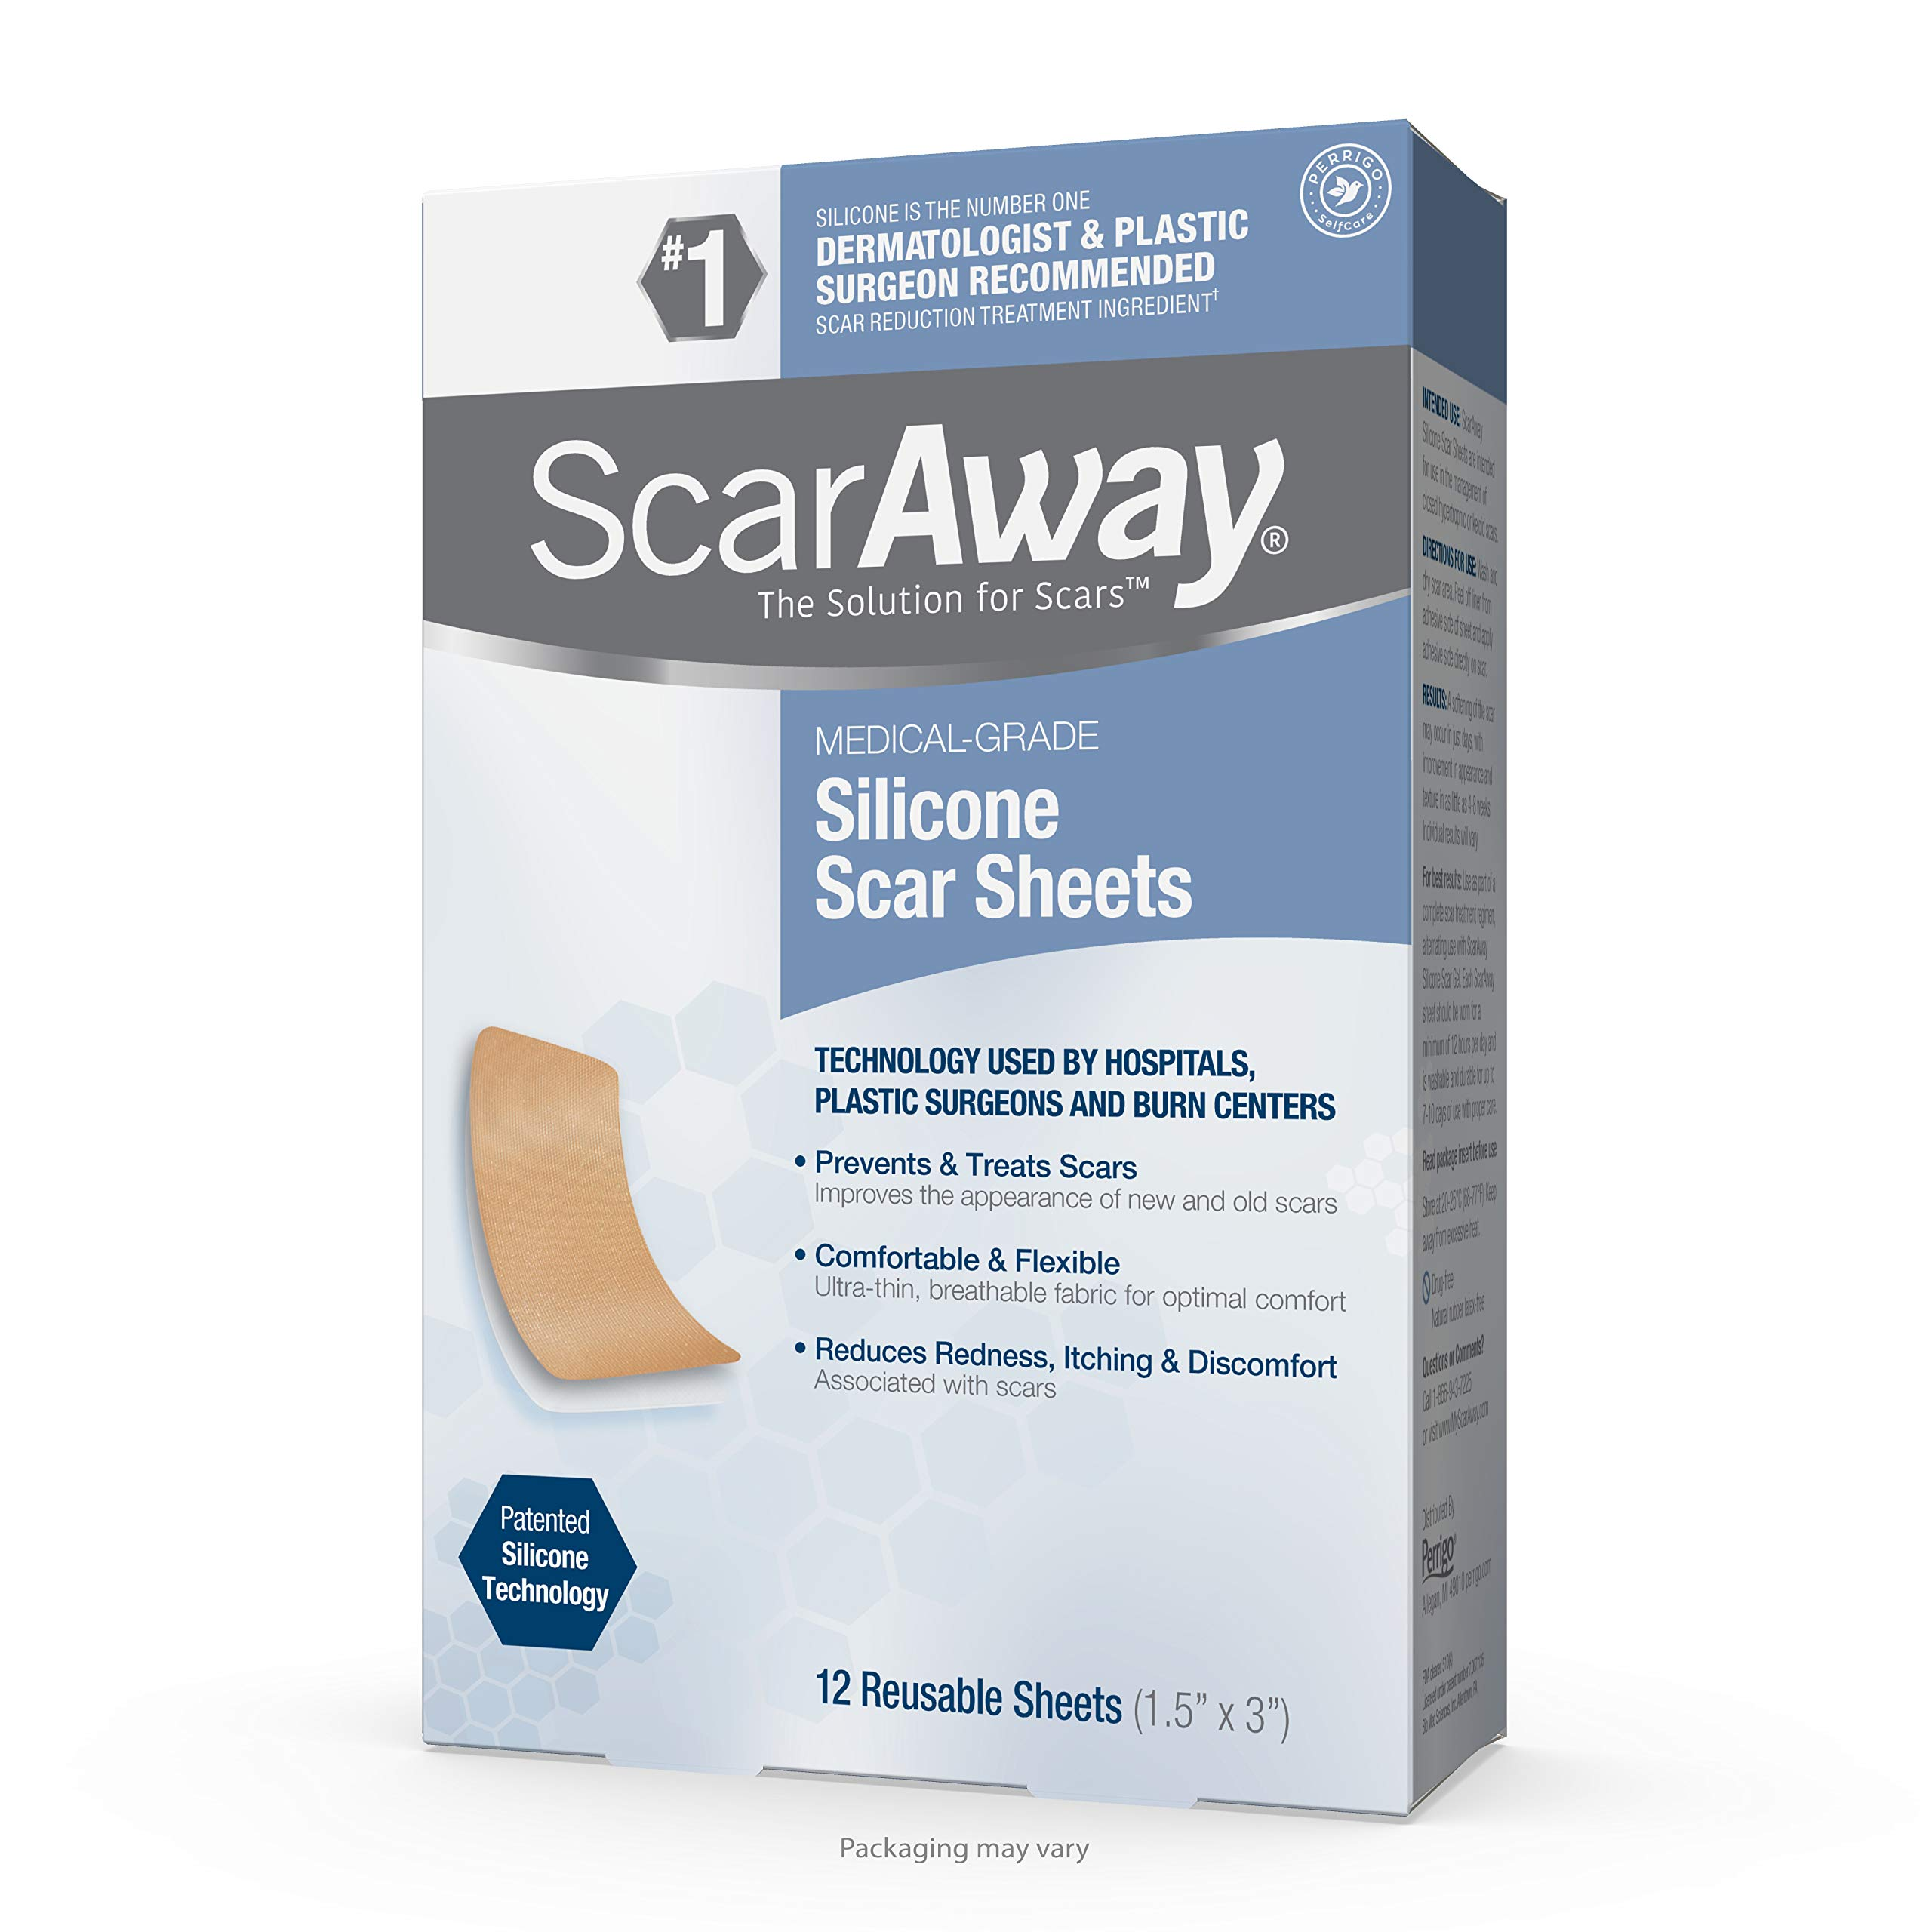 ScarAway Advanced Skincare Silicone Scar Sheets, Silicone Scar Sheets for Body Scar, Surgical Scar, Burn Scar, Acne Scar and Keloid Scar Treatment, 12 Sheets